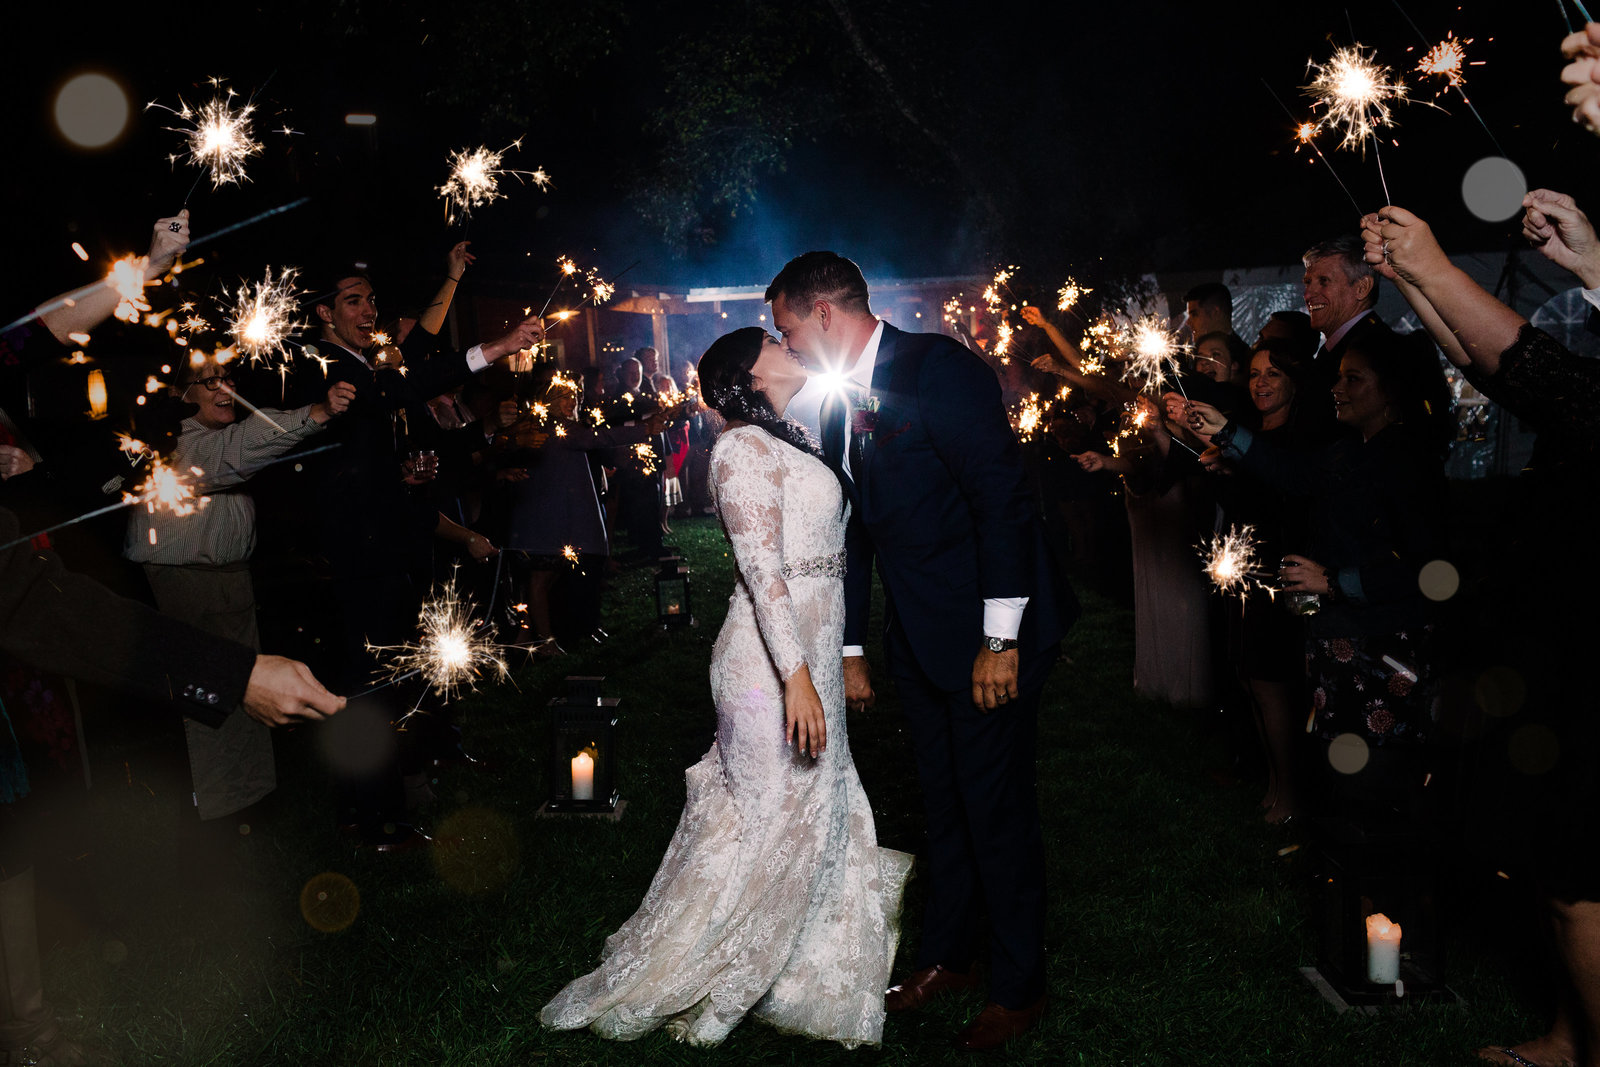 Bride and Groom, Corrie and Neal, stop for a kiss as their friends raise sparklers for their big wedding exit by Jackelynn Noel Photography